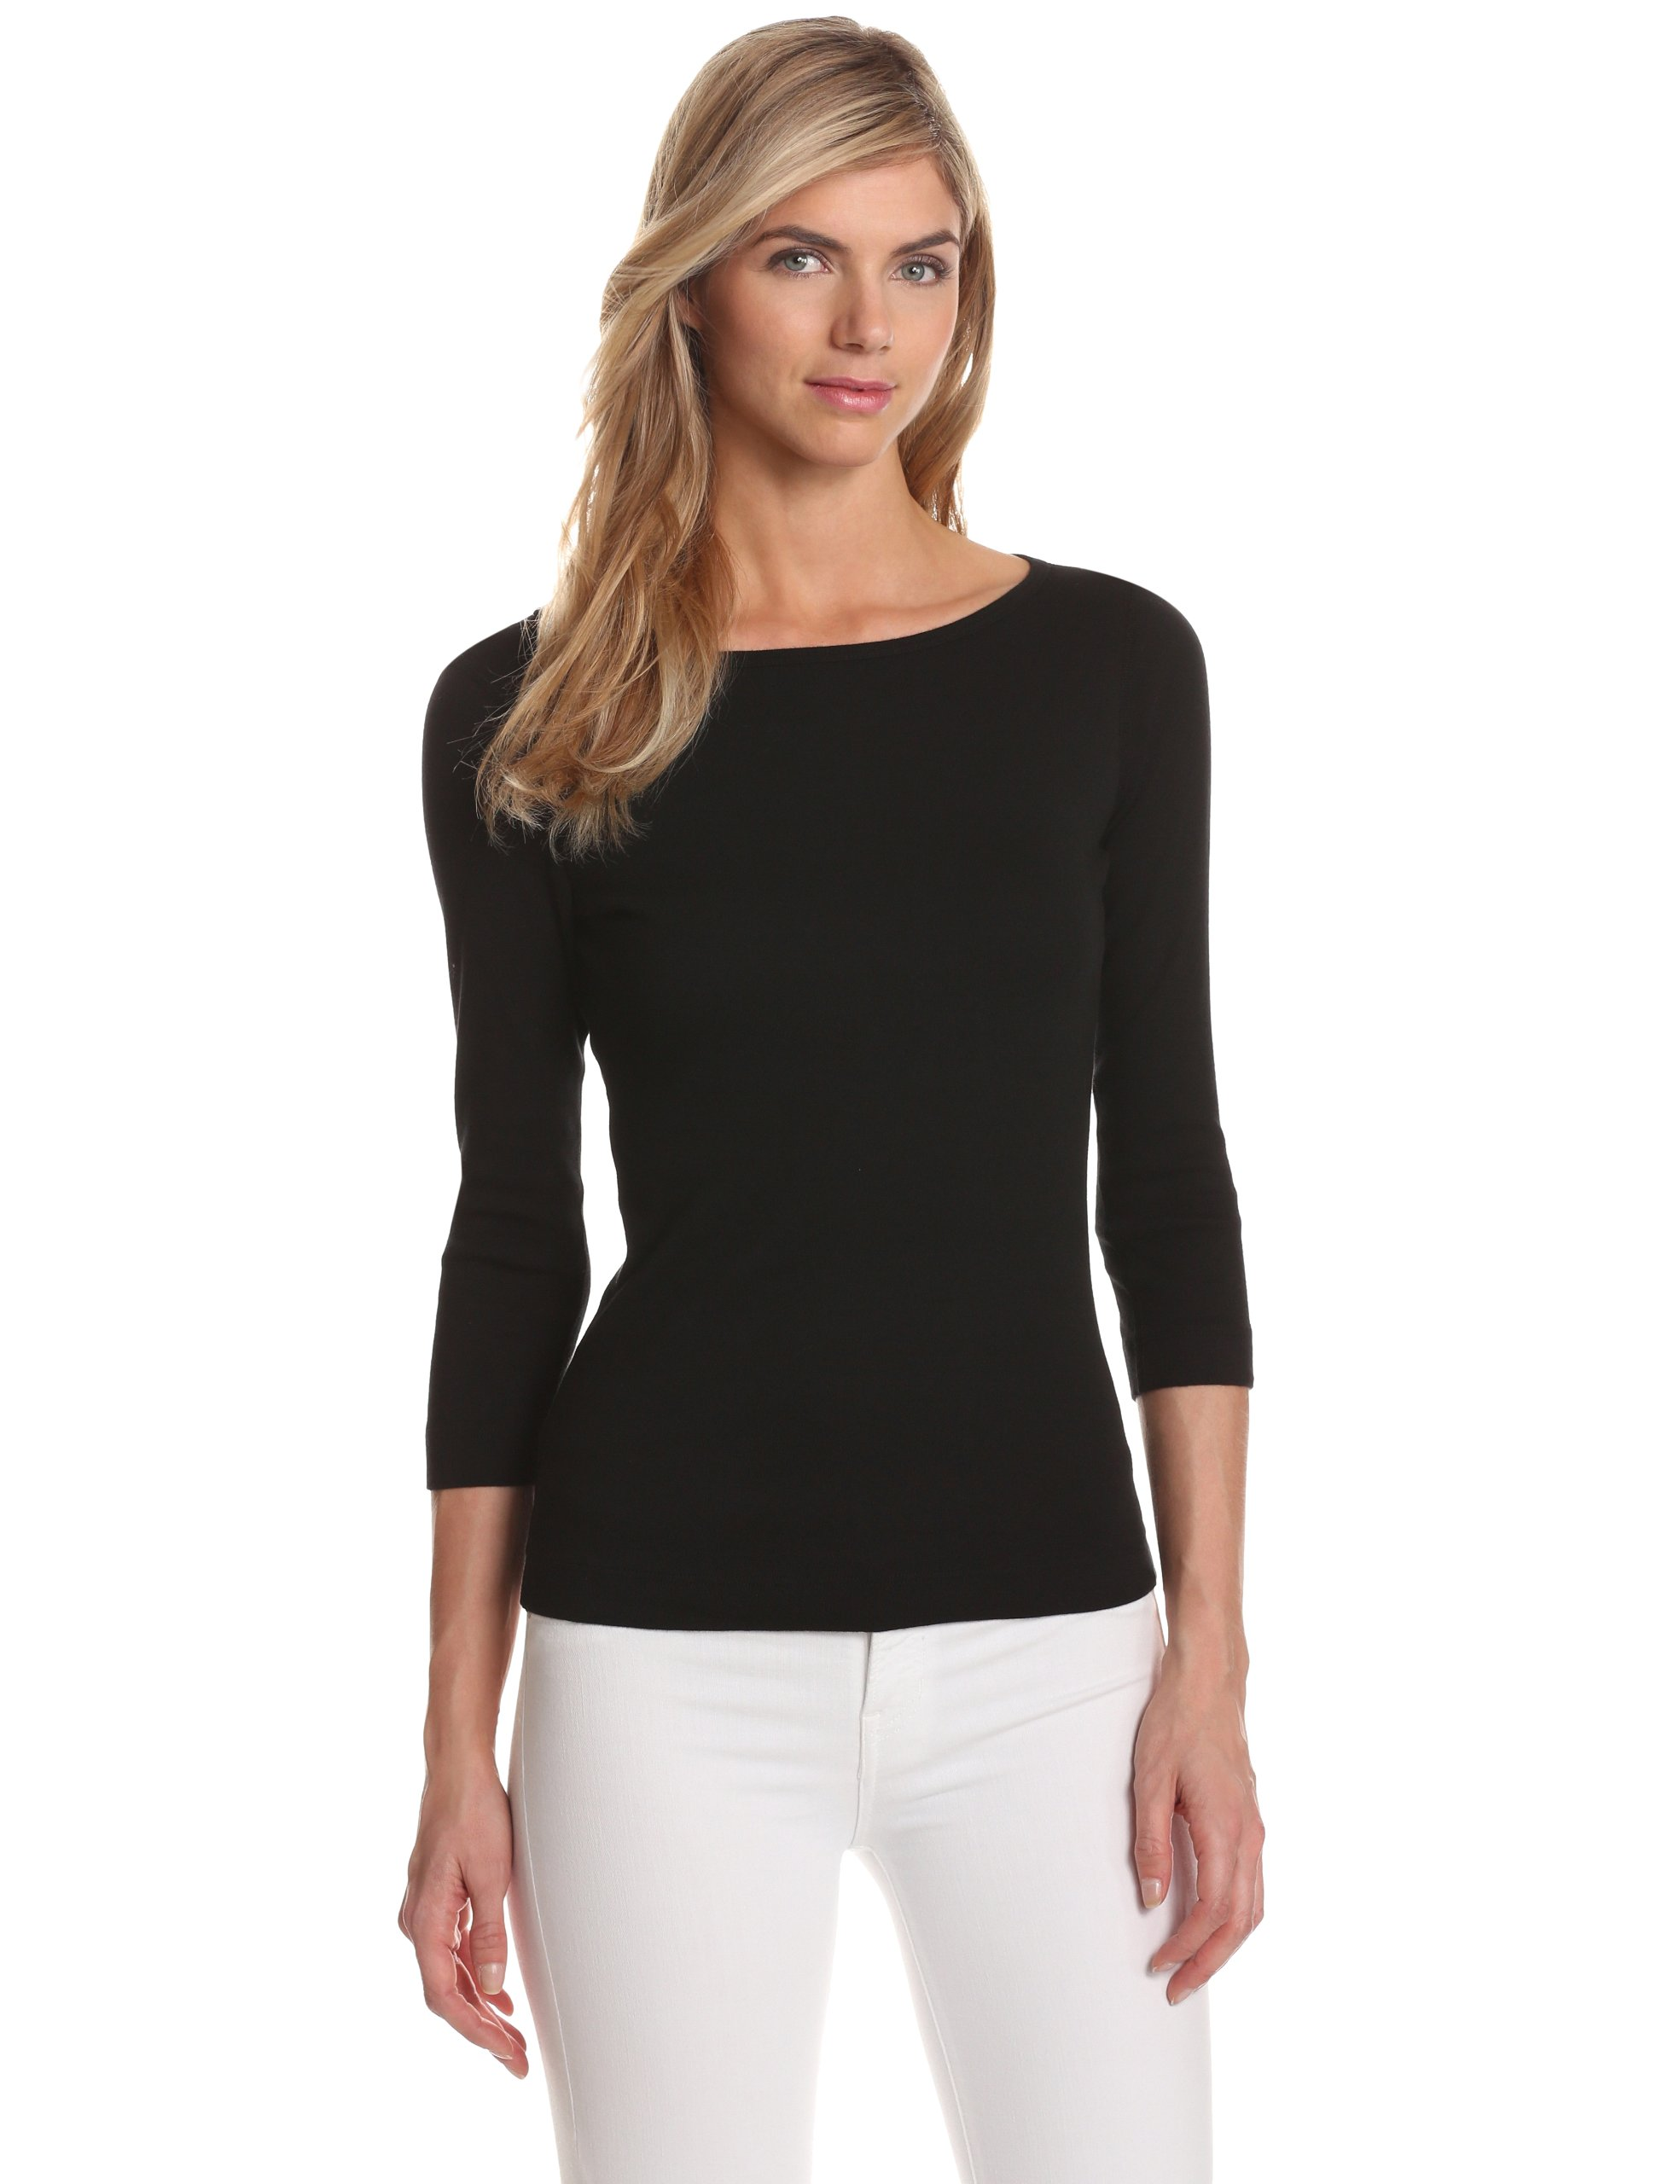 Three Dots Women's 3/4 Sleeve British Tee,Black,Medium